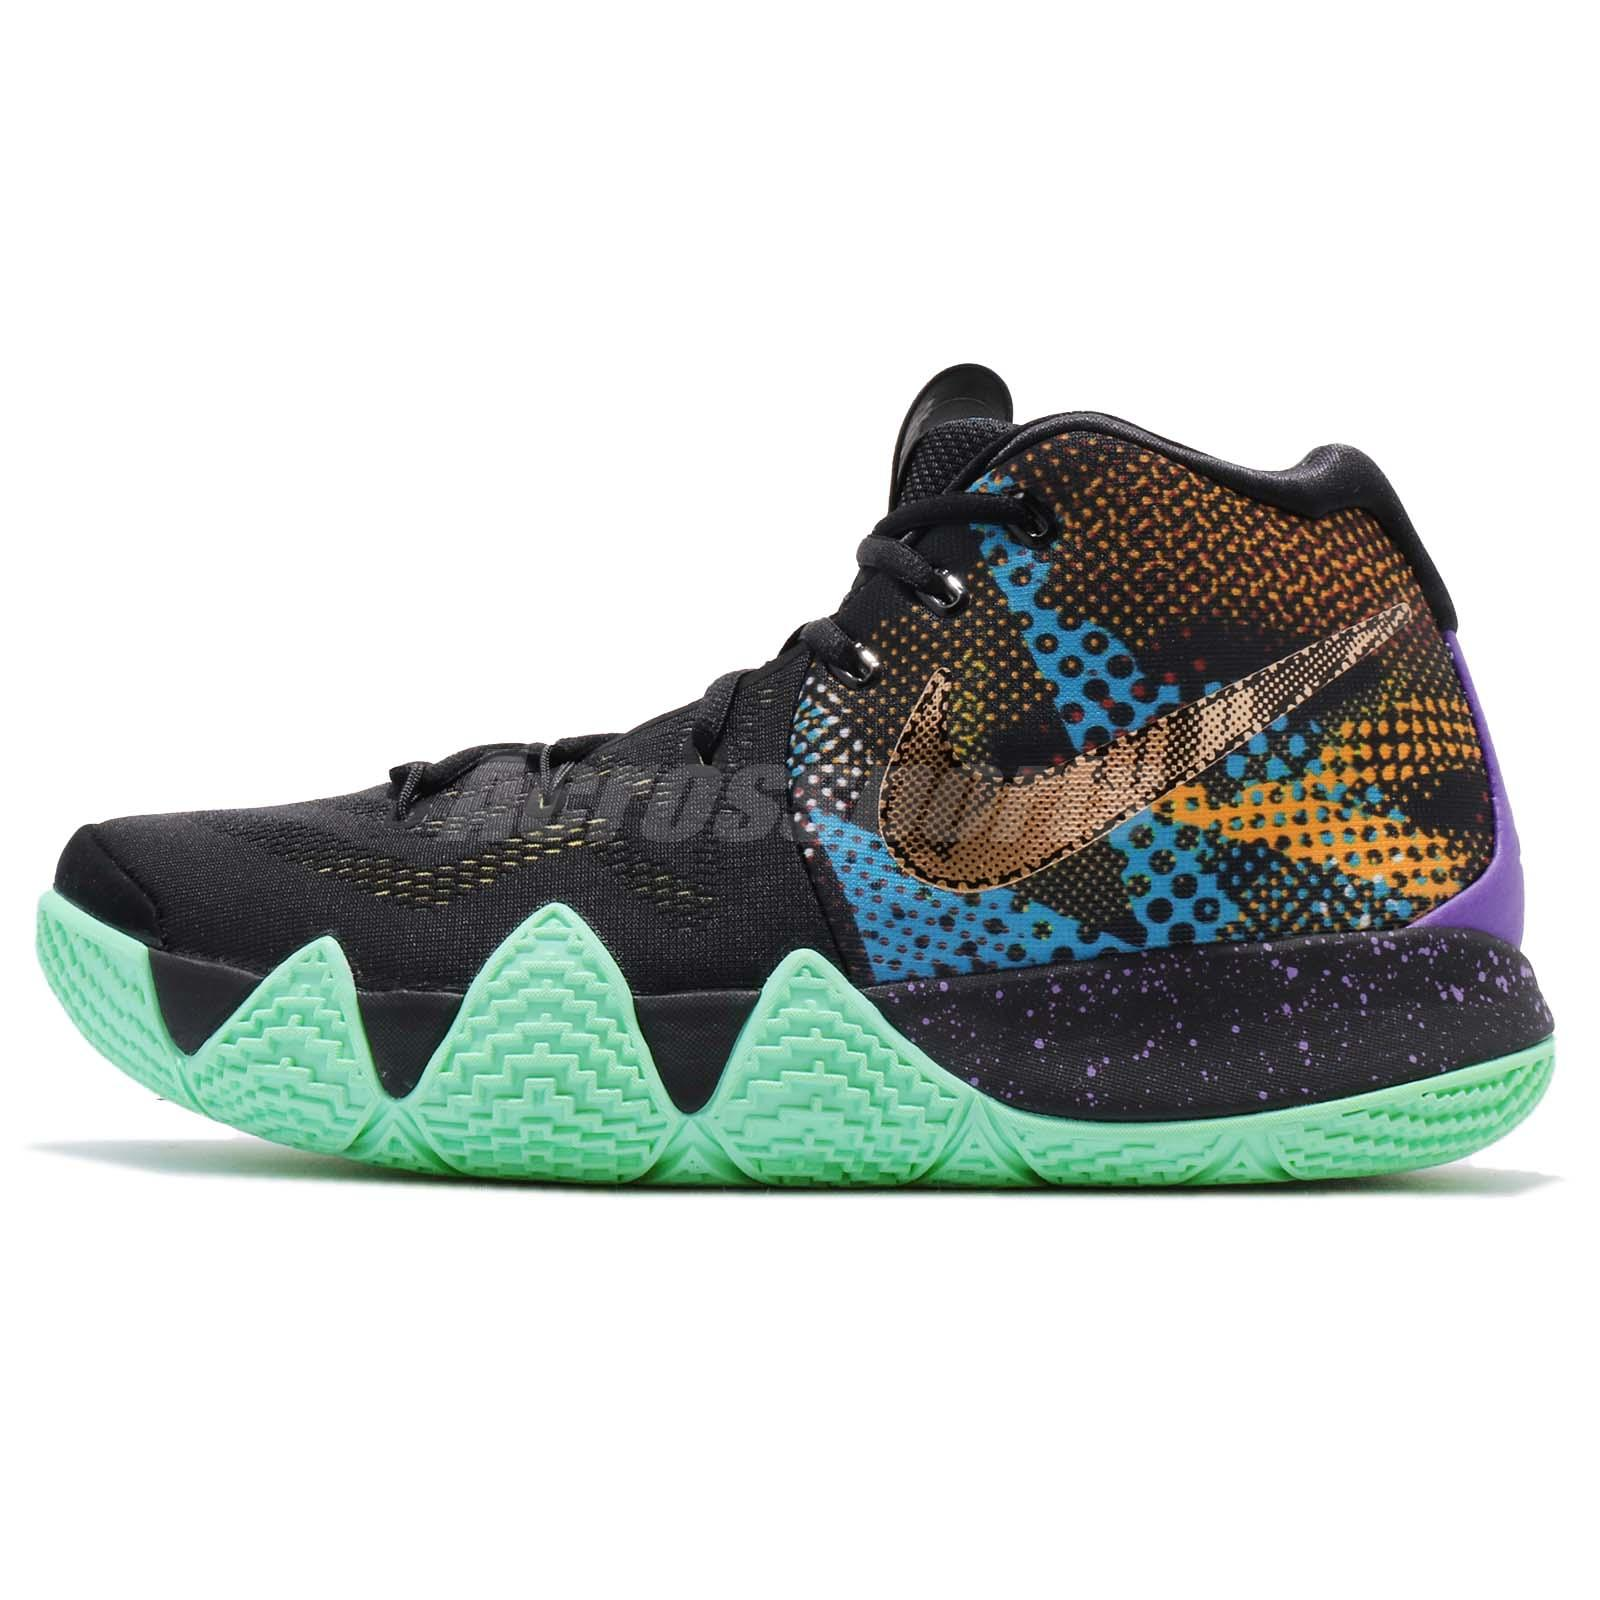 Nike Kyrie 4 Mamba EP [AV2594-001] Men Basketball Shoes Black/Sonic Yellow